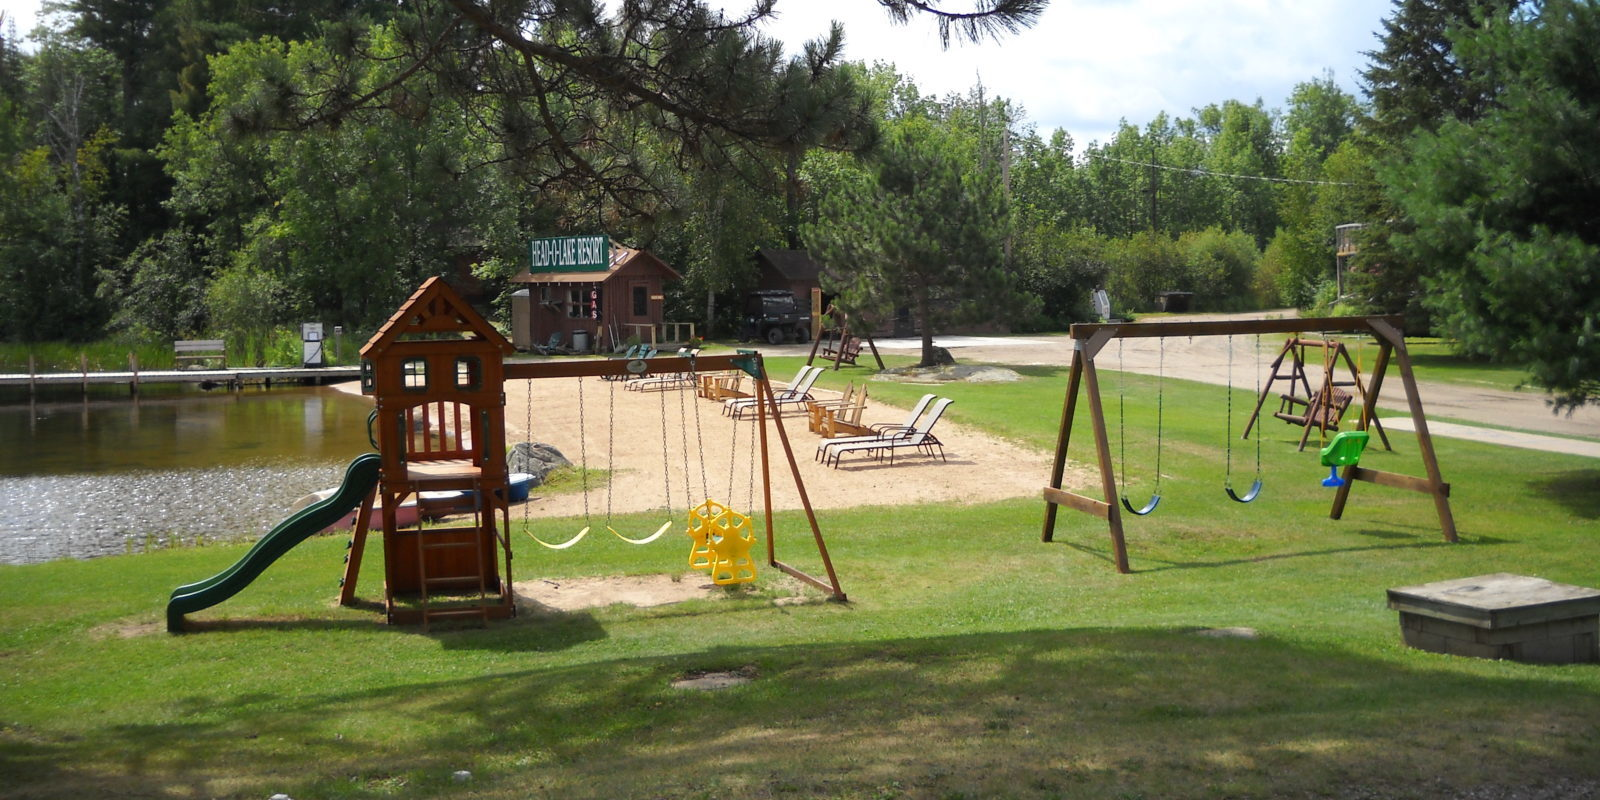 Playground and Beach